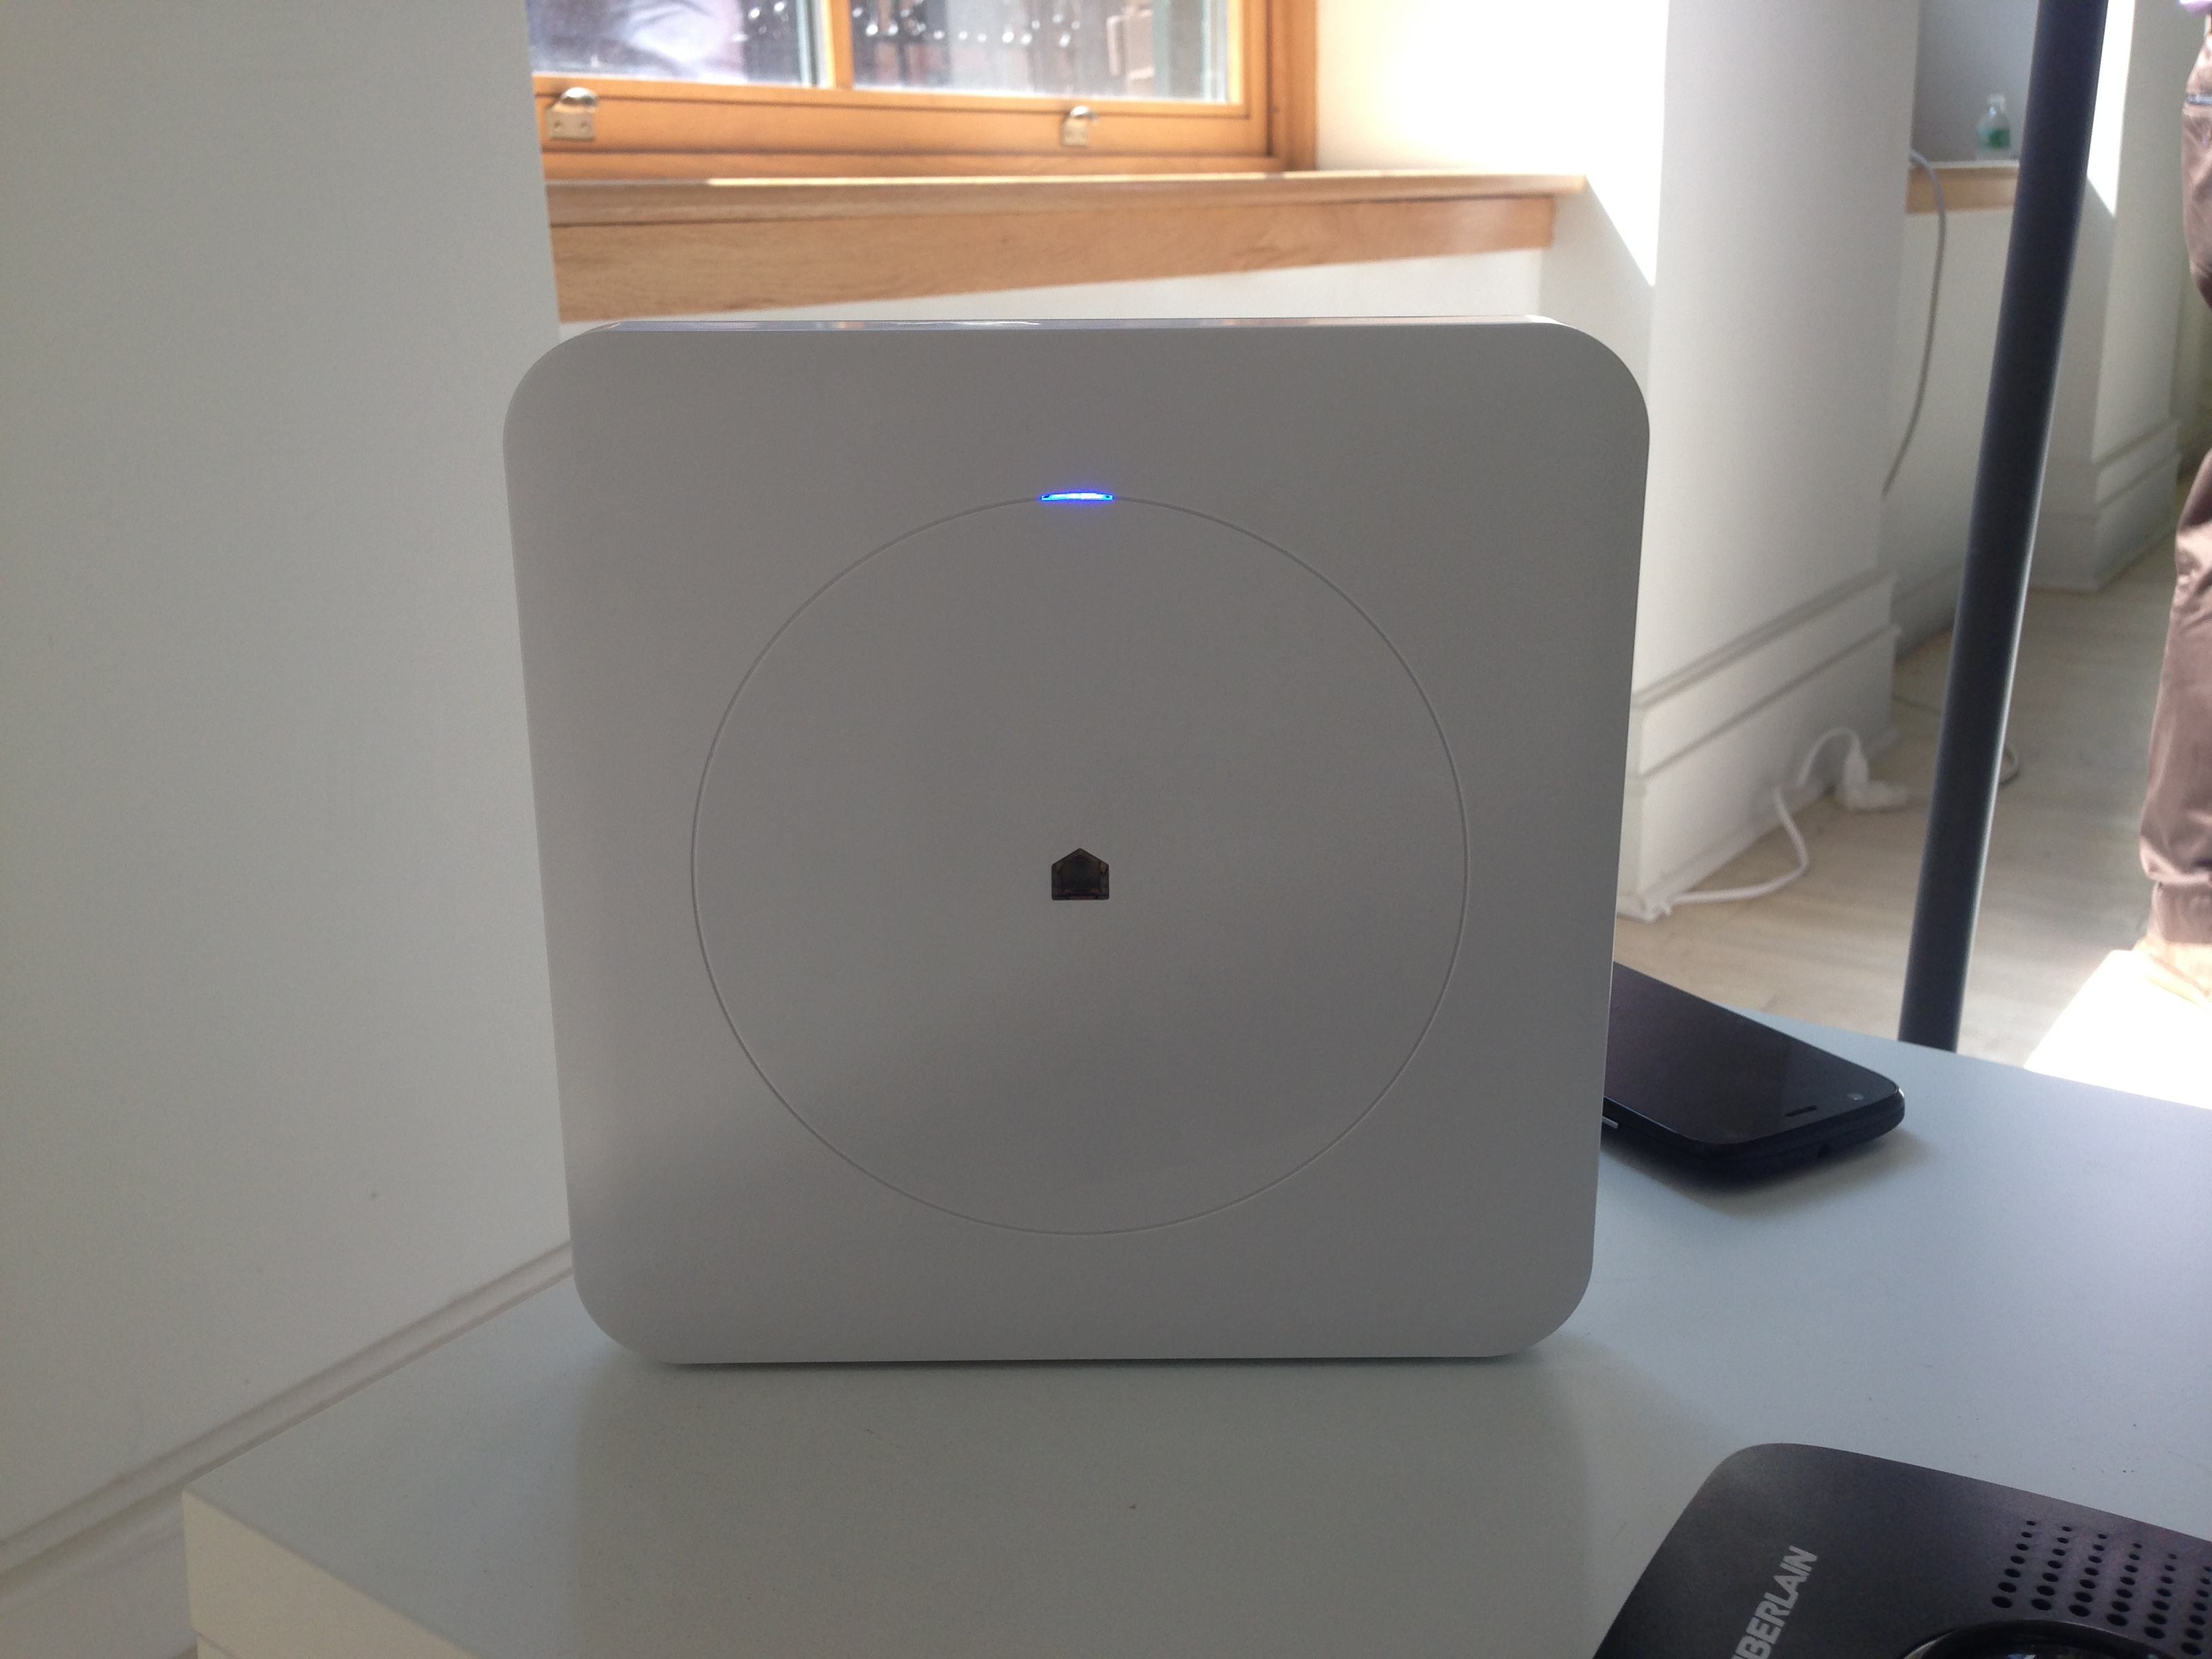 The Wink hub will be in Home Depot stores on July 7.